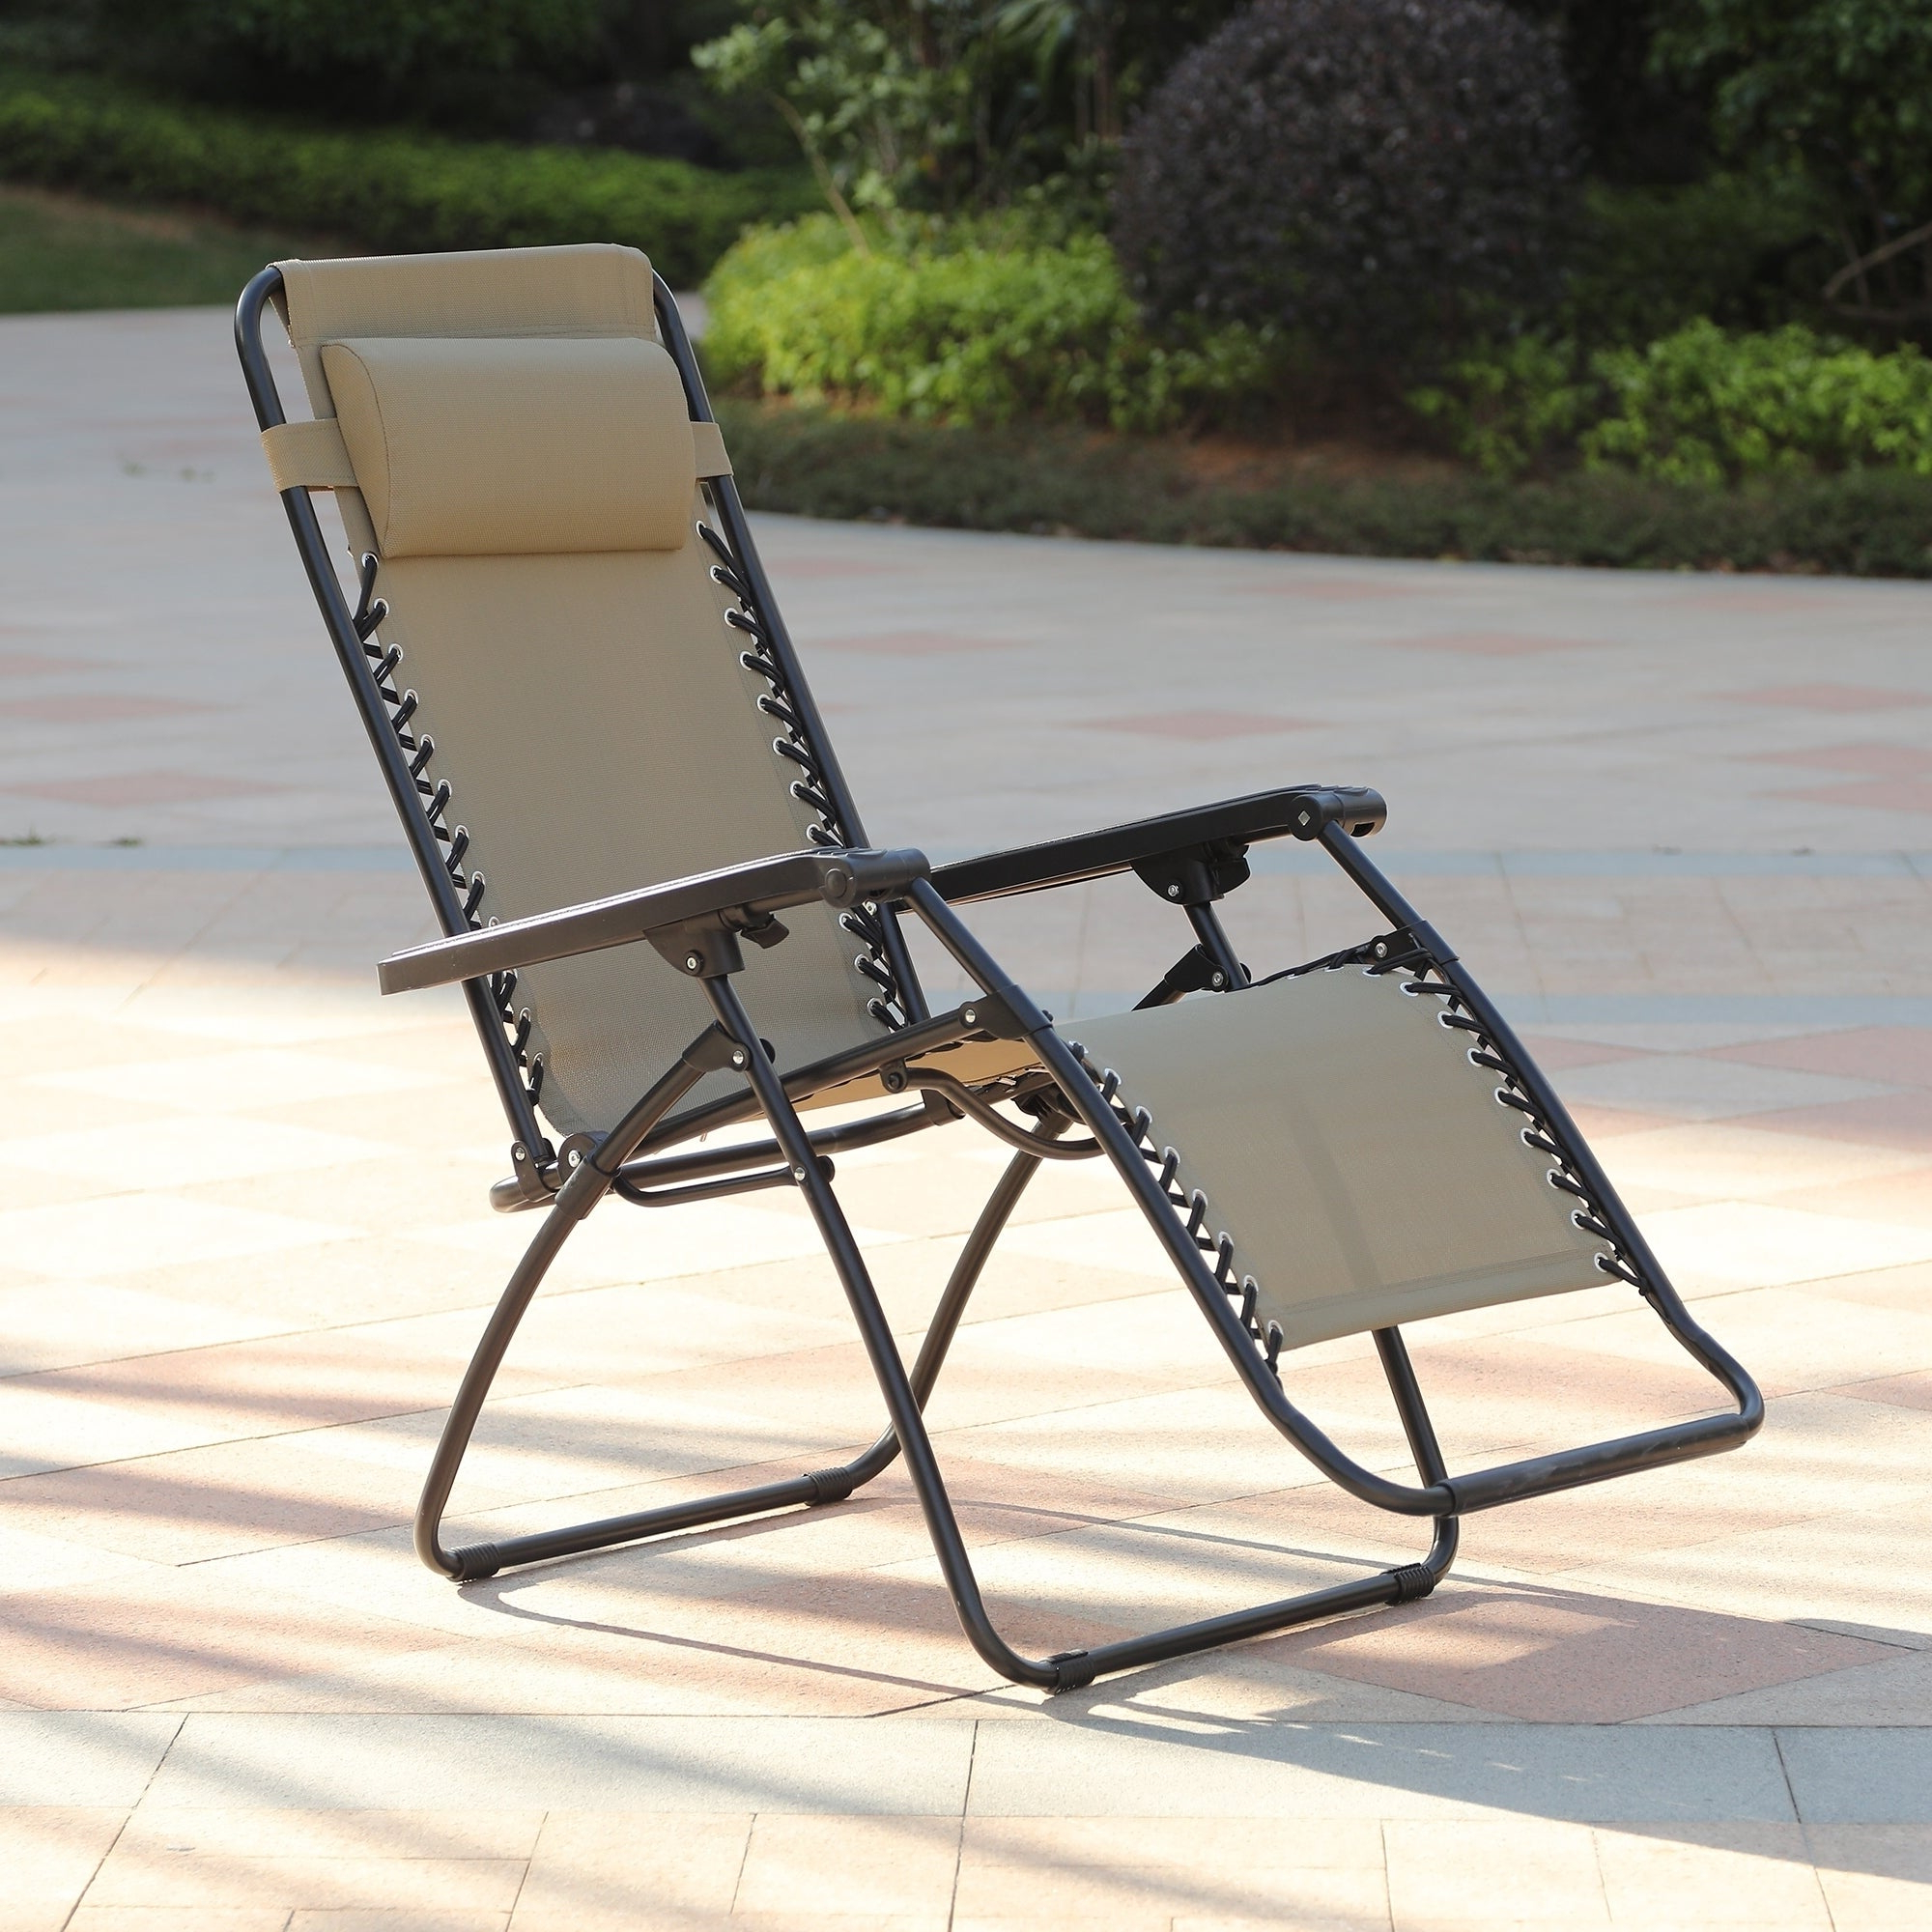 Mesh Fabric With Steel Frame Chairs With Canopy And Tray Pertaining To Fashionable Havenside Home Glovertown Zero Gravity Chair (View 11 of 25)